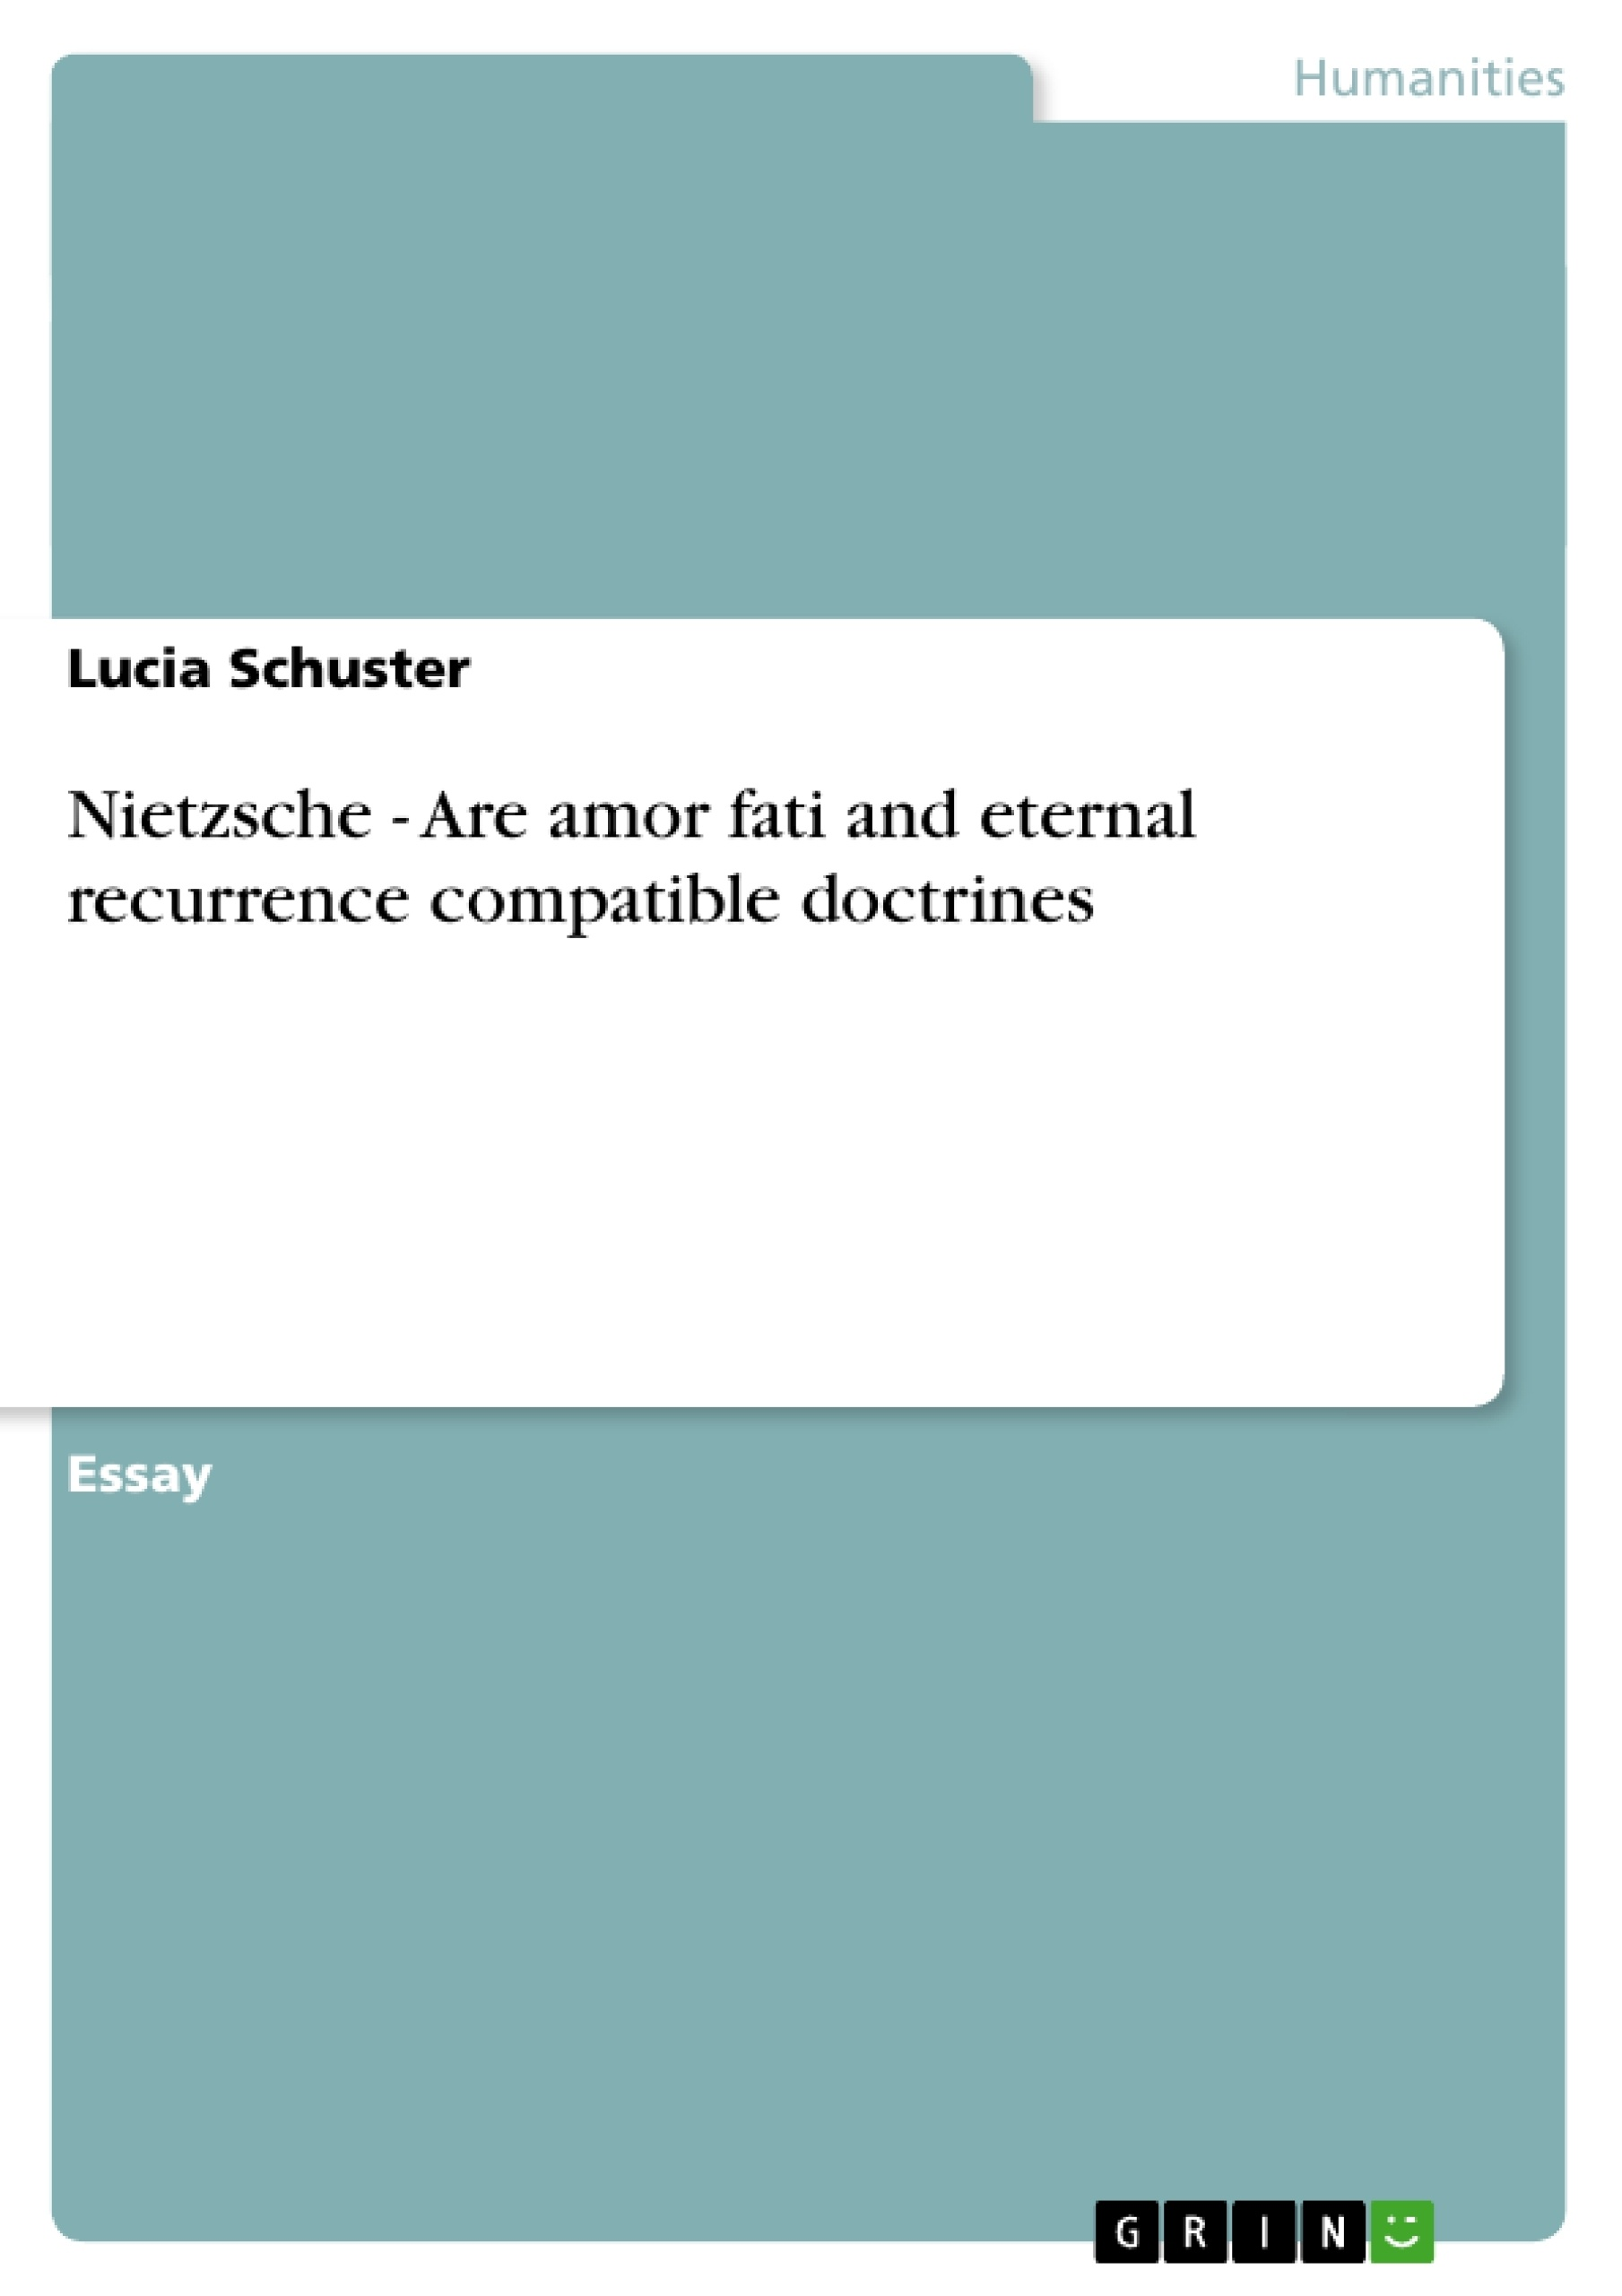 Title: Nietzsche - Are amor fati and eternal recurrence compatible doctrines